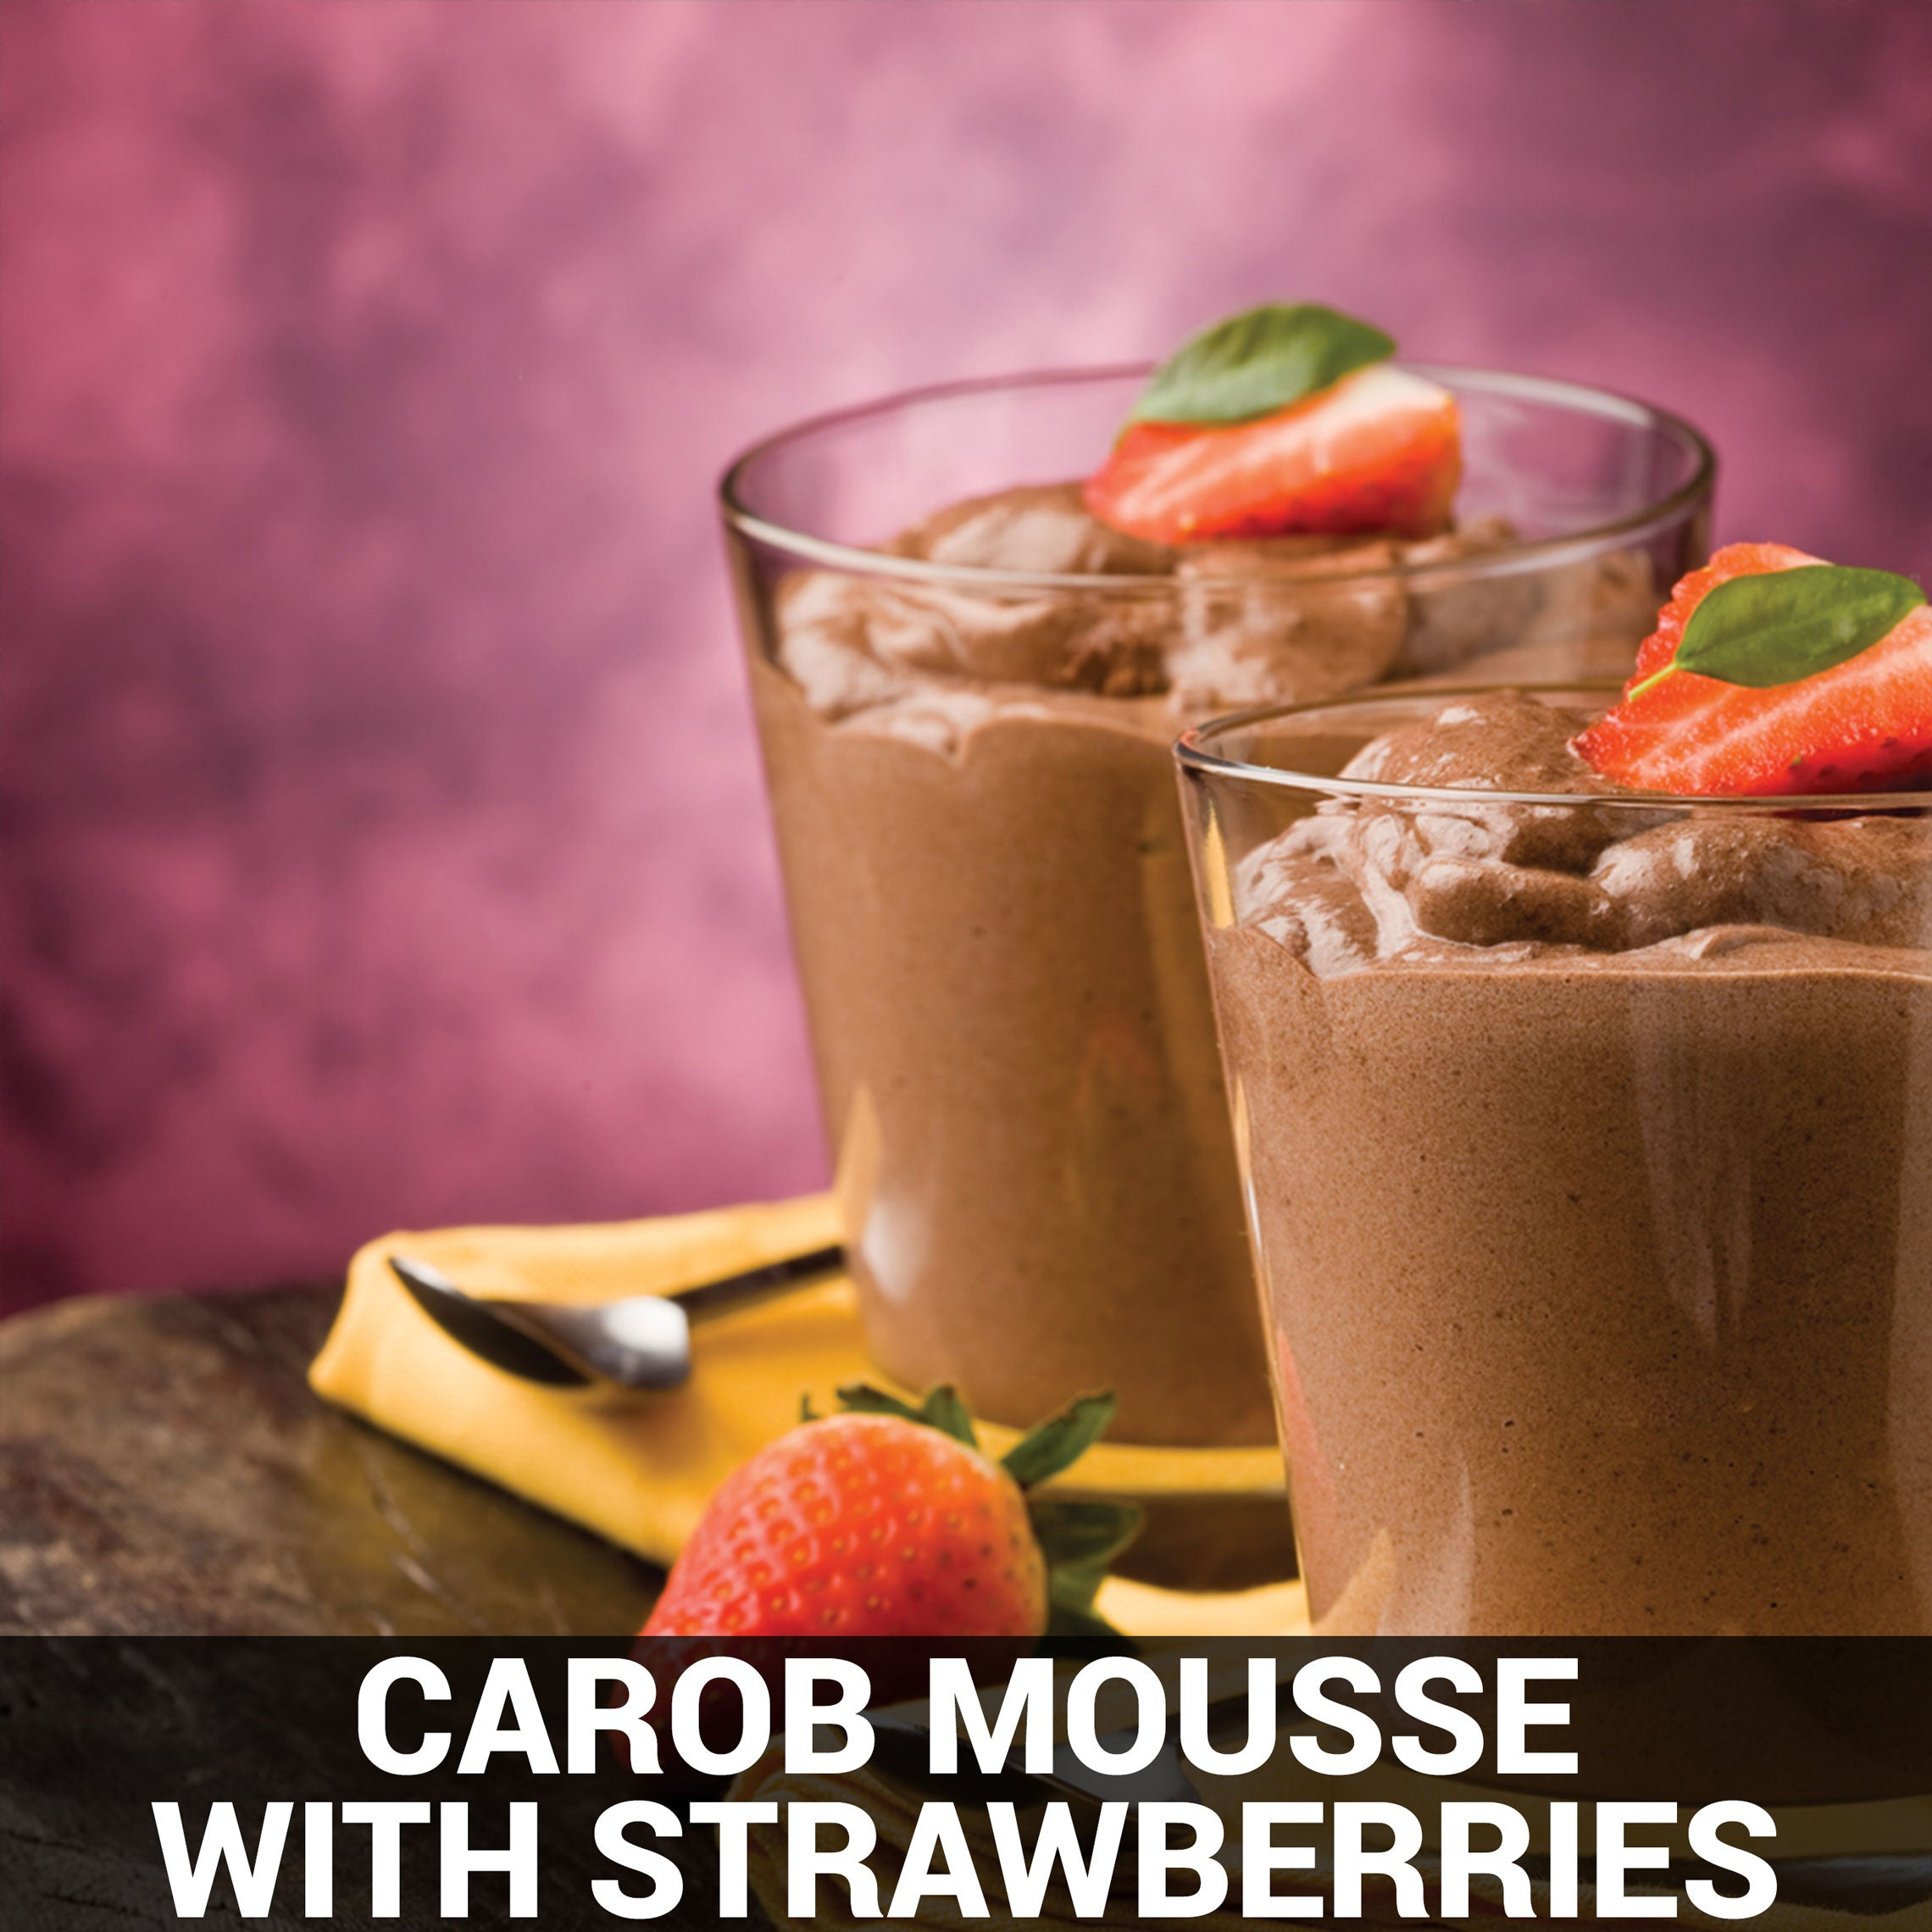 Carob Mousse with Strawberries Recipe - Foods Alive